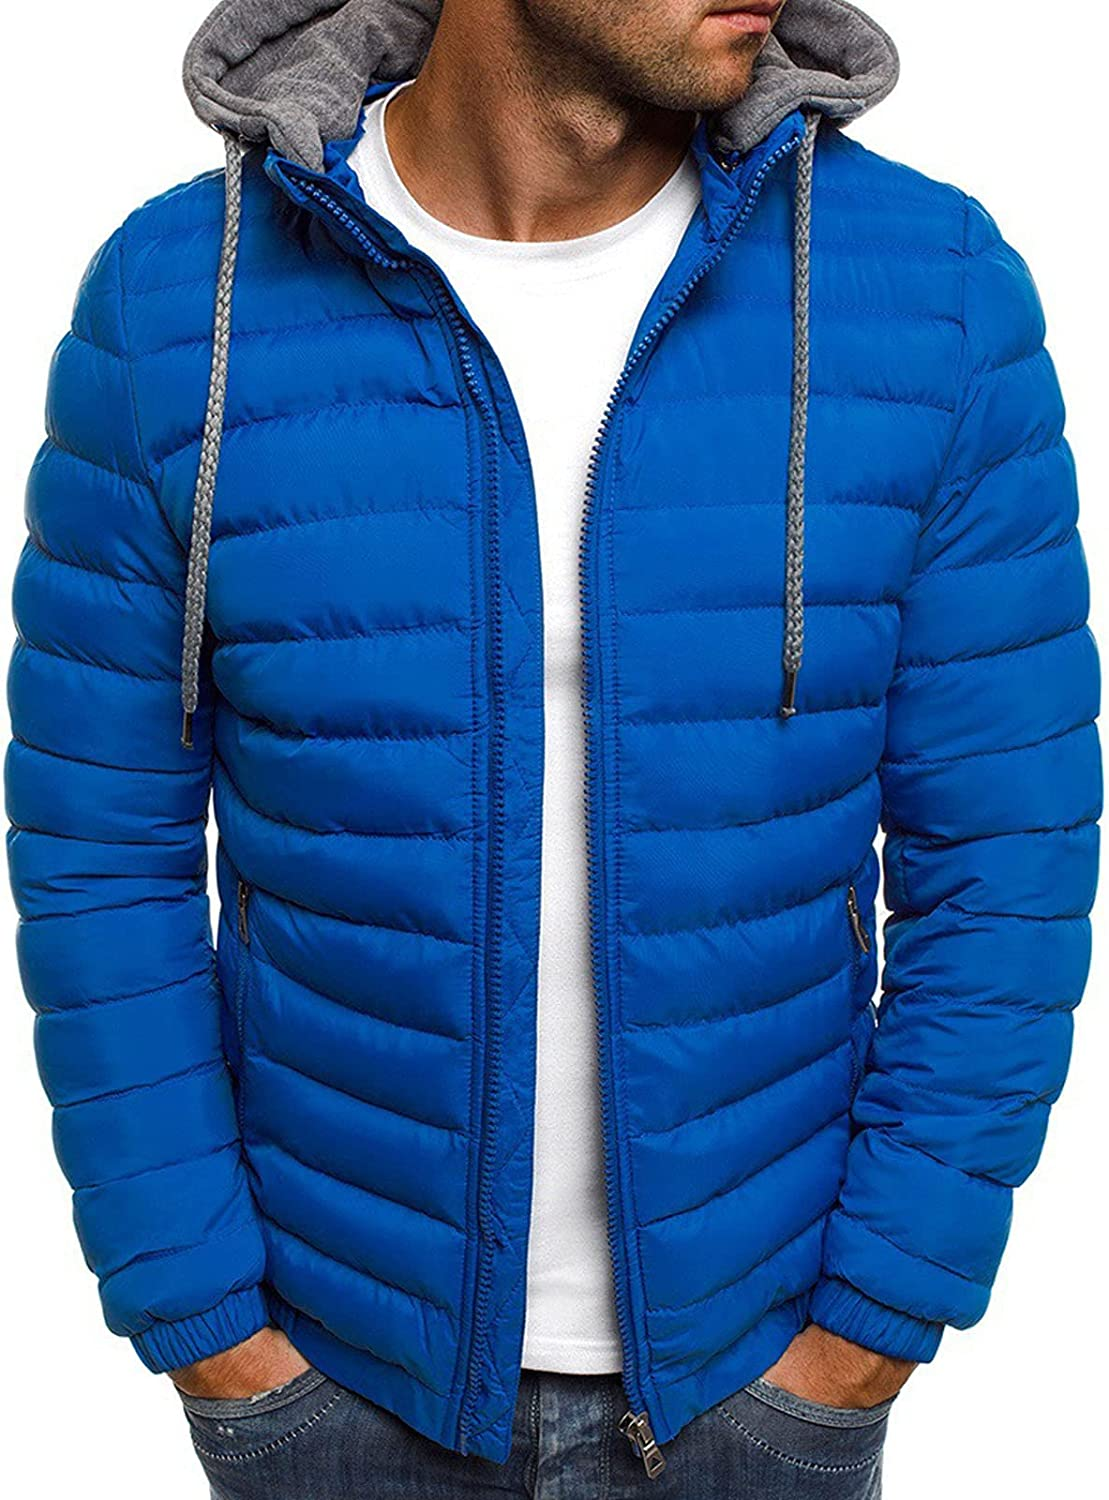 Directly managed store goowrom Men's Winter Down Jacket Solid Sleeve Zi Long Color Full New Shipping Free Shipping